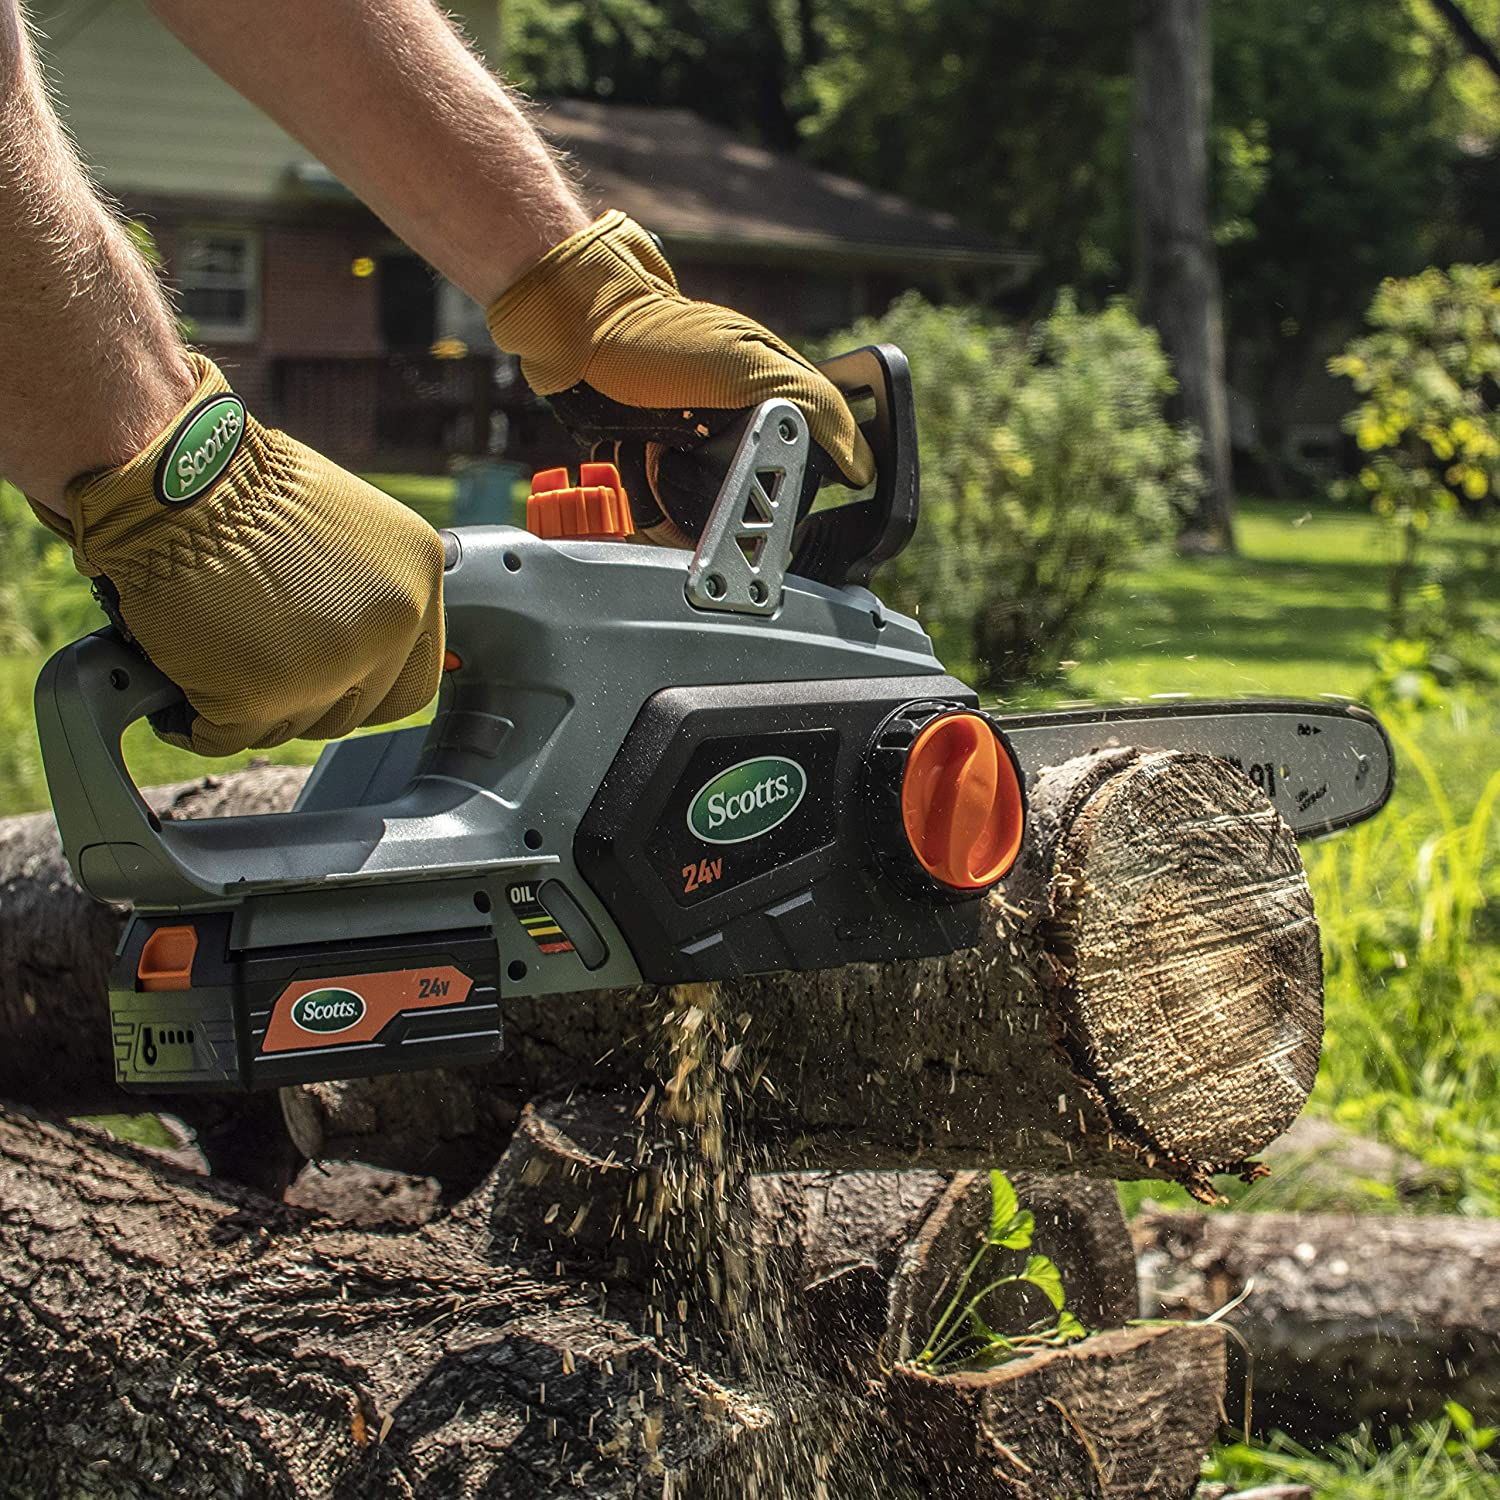 Scotts Outdoor Power Tools LCS31224S featured image 8